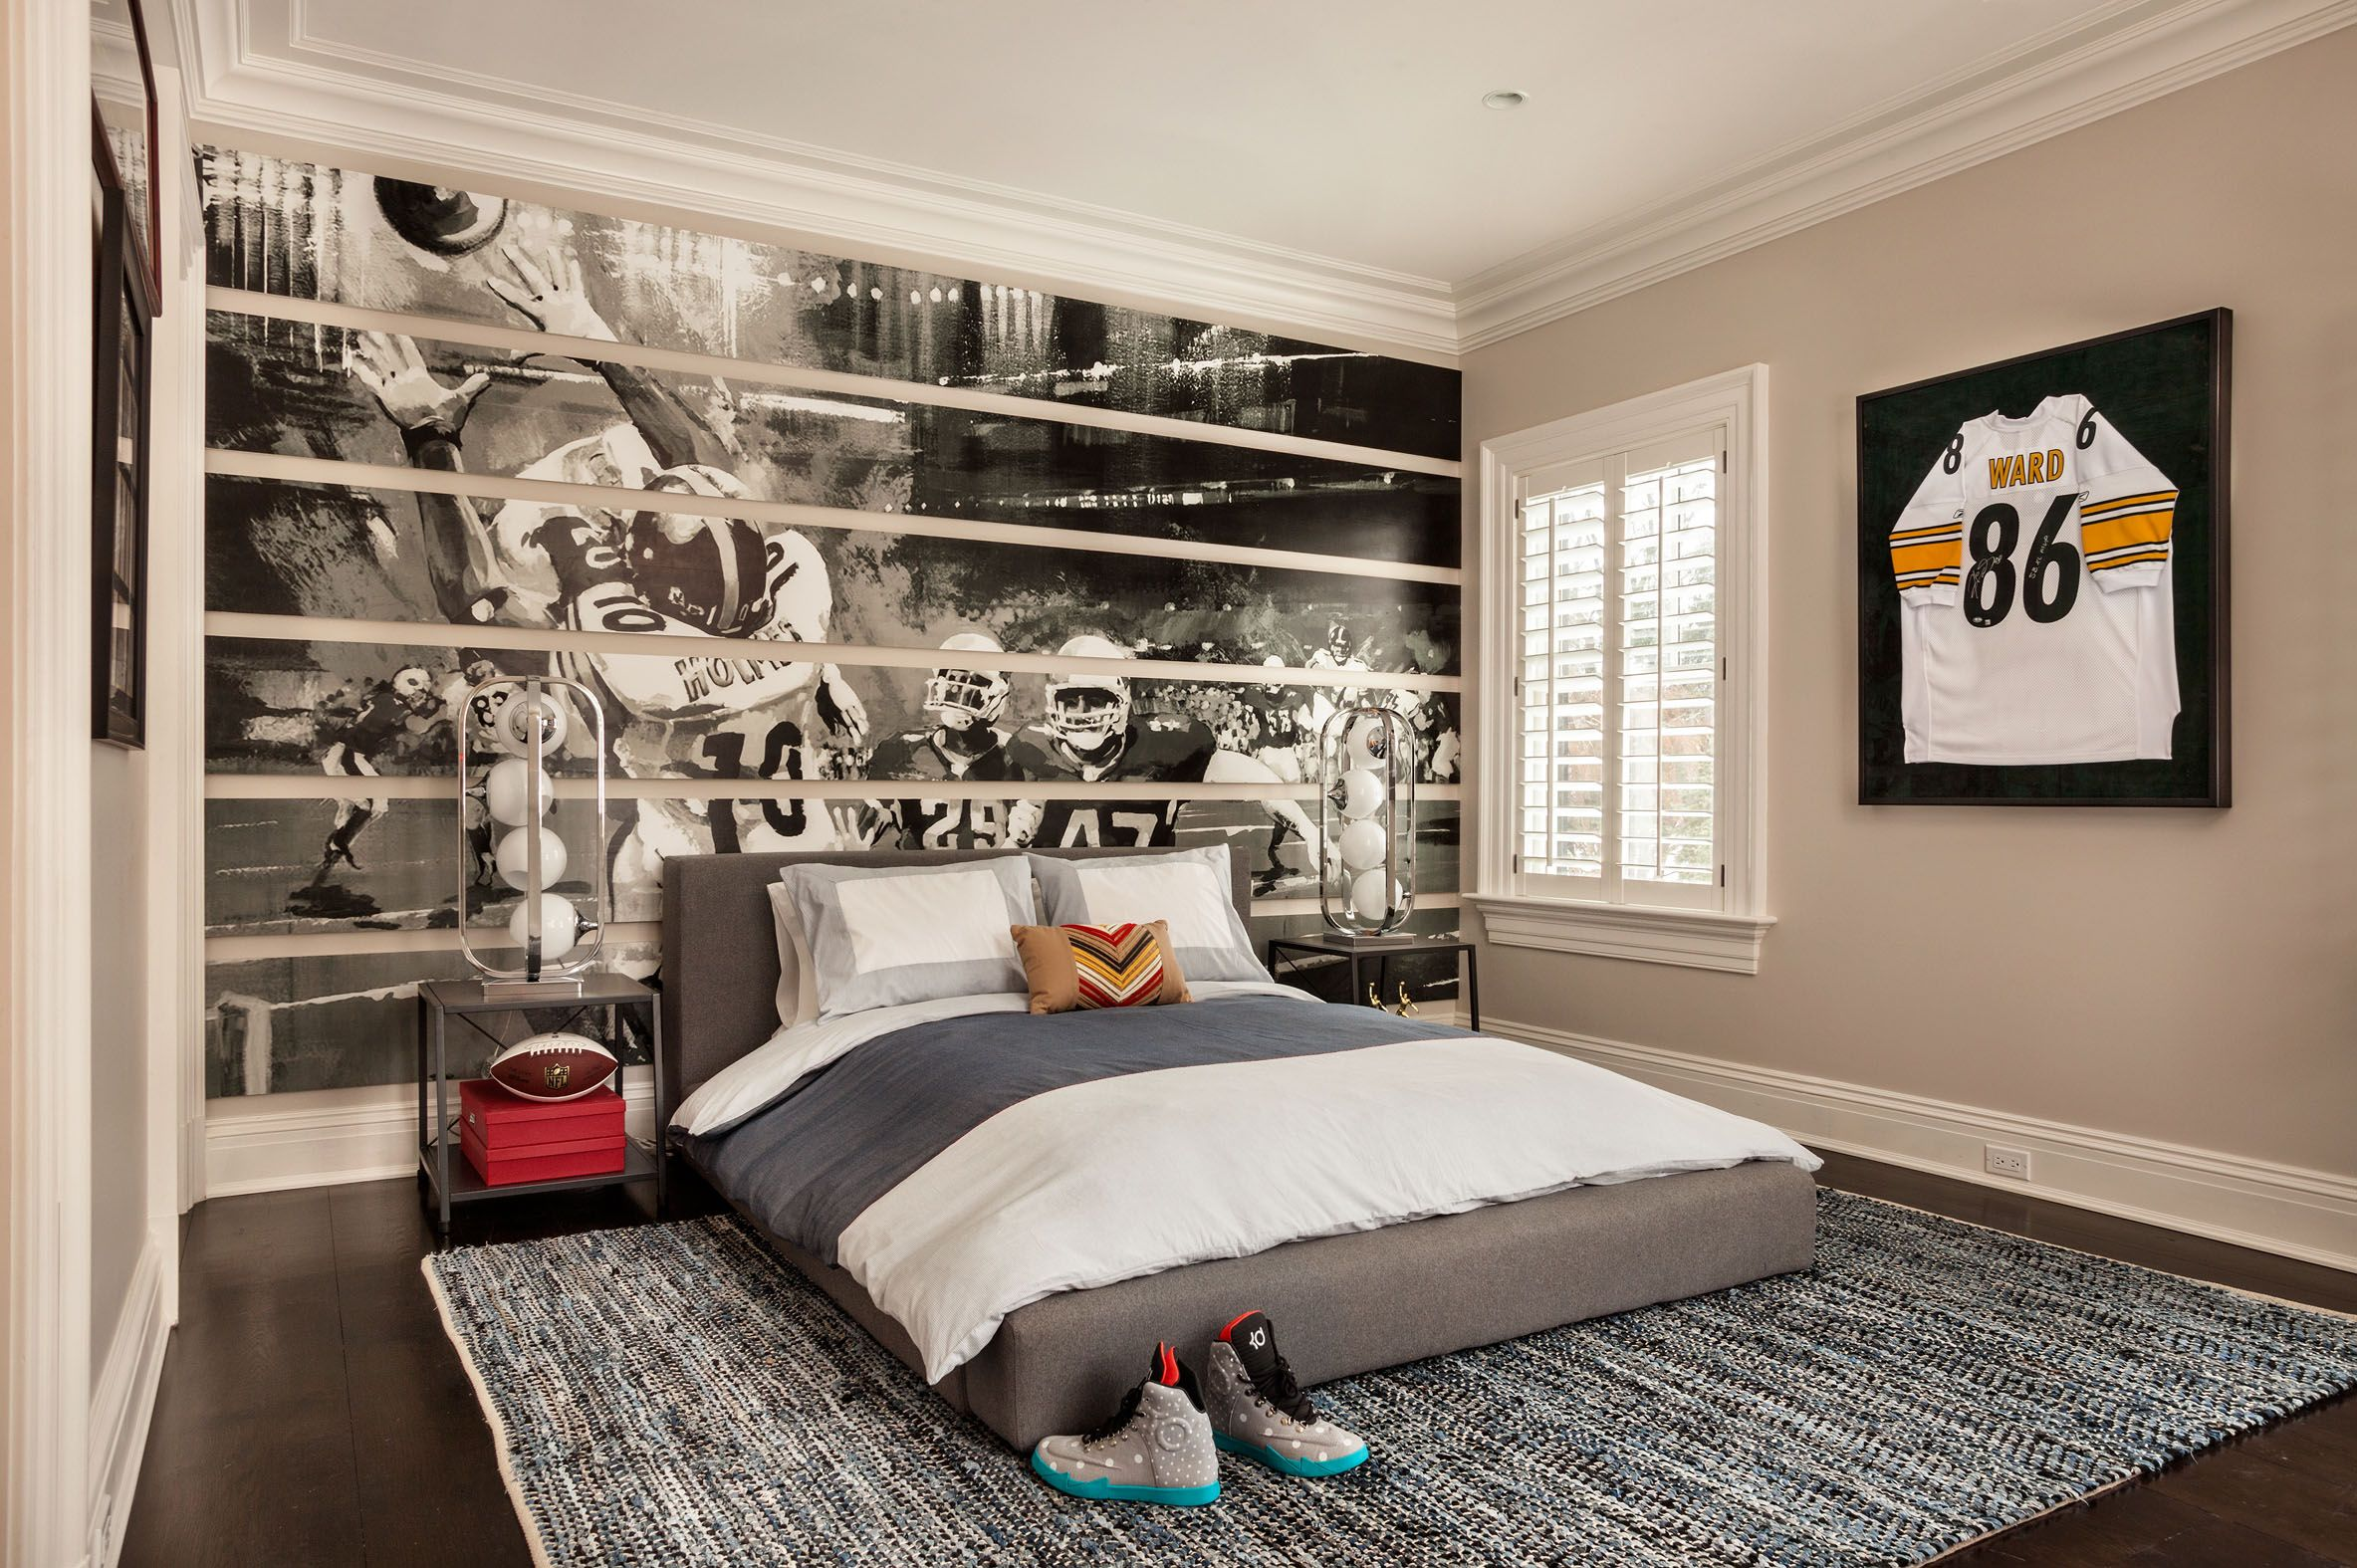 Basement Bedroom Ideas For Teenagers Teens Room Boys Teenage Bedroom Ideas Houzz With Sporty